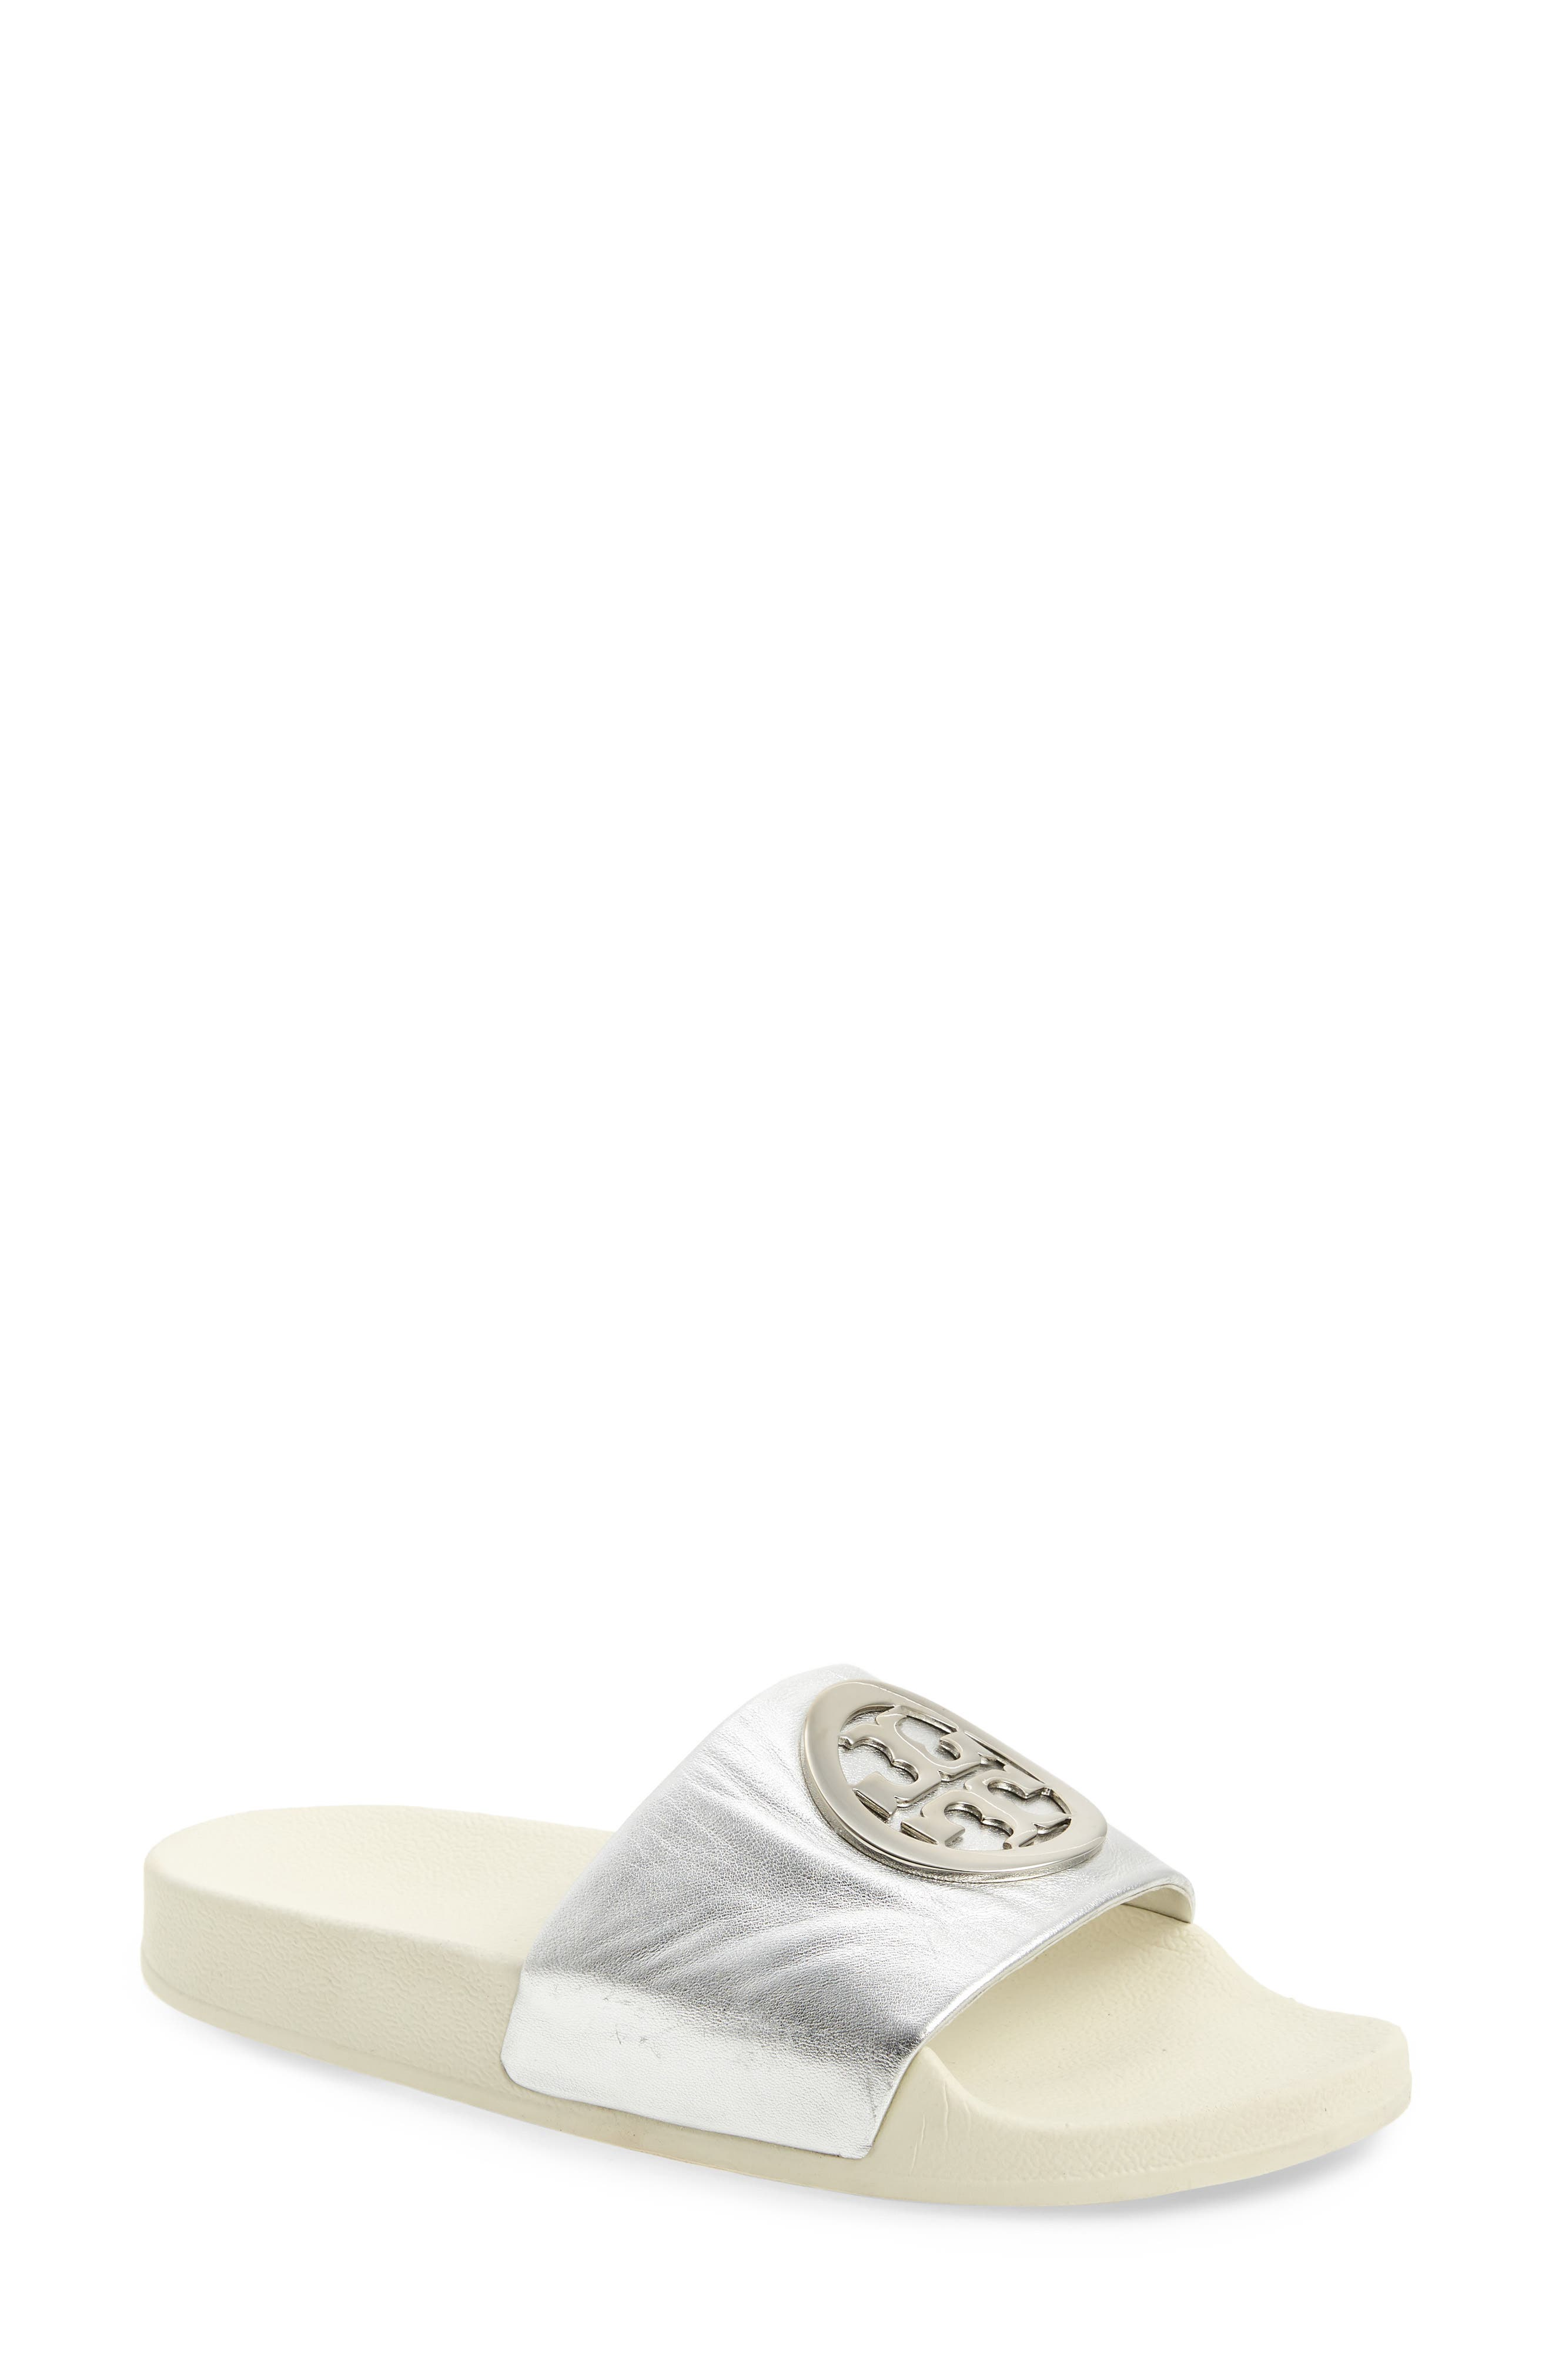 Tory Burch Lina Slide Sandal (Women)